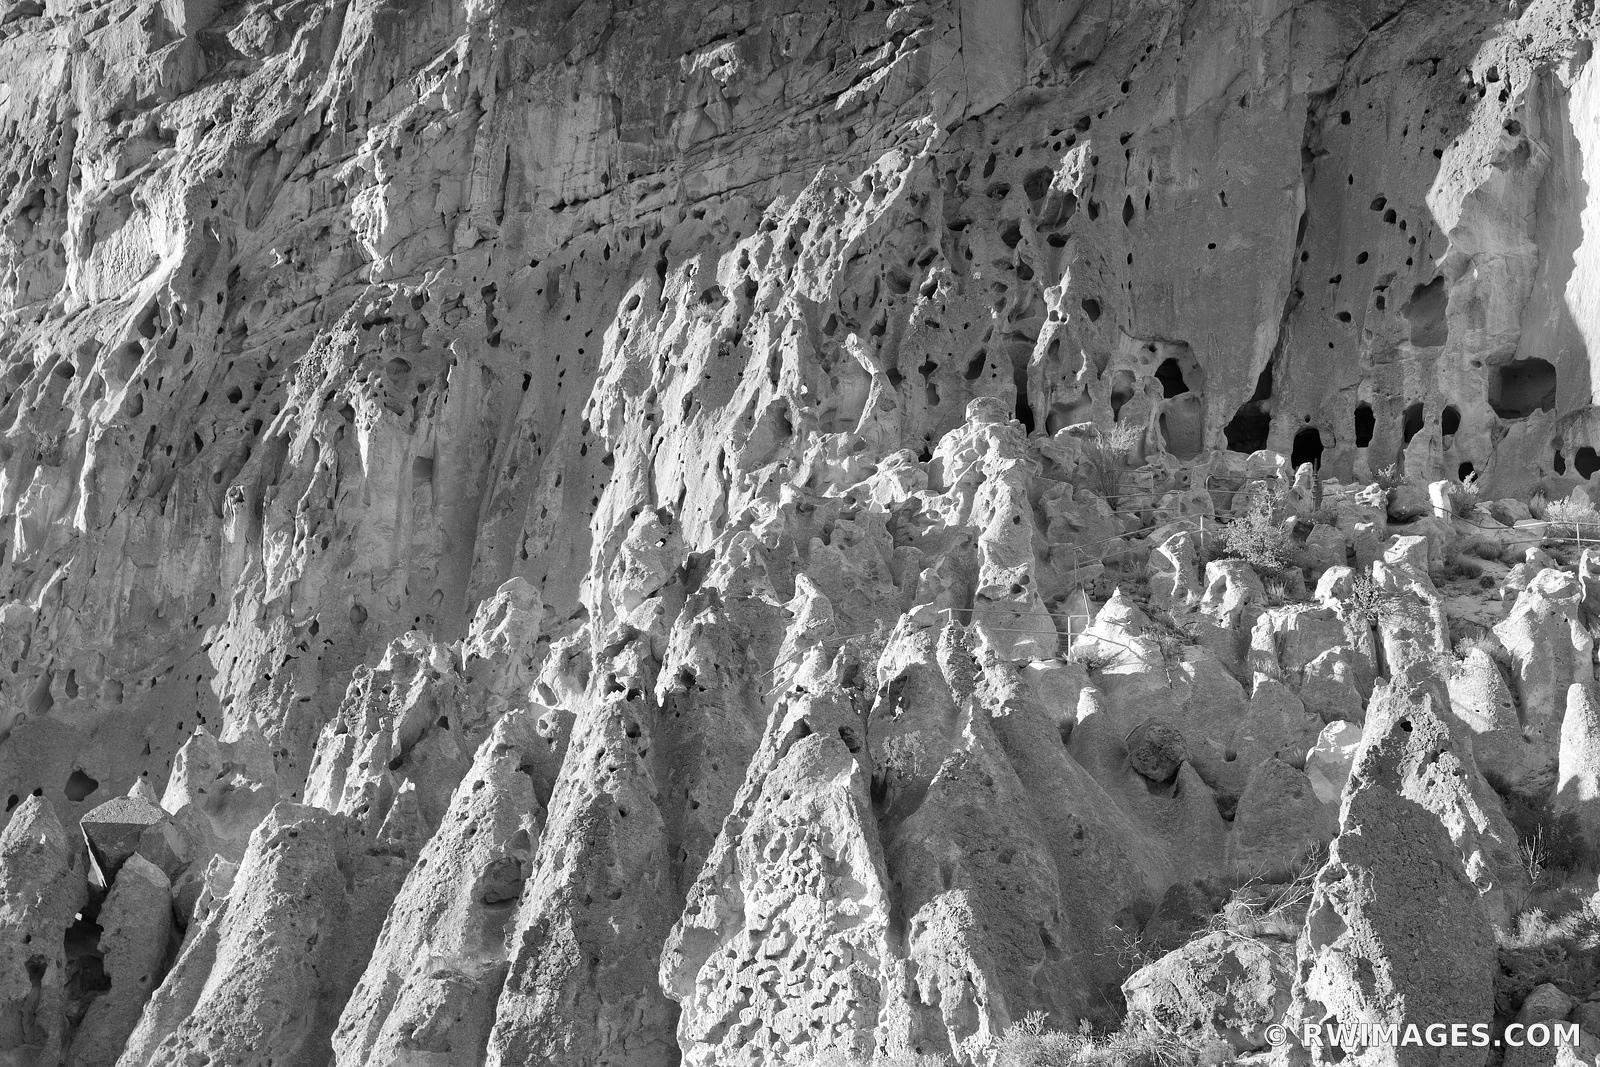 NATIVE AMERICAN CLIFF DWELLINGS BANDELIER NATIONAL MONUMENT NEW MEXICO BLACK AND WHITE